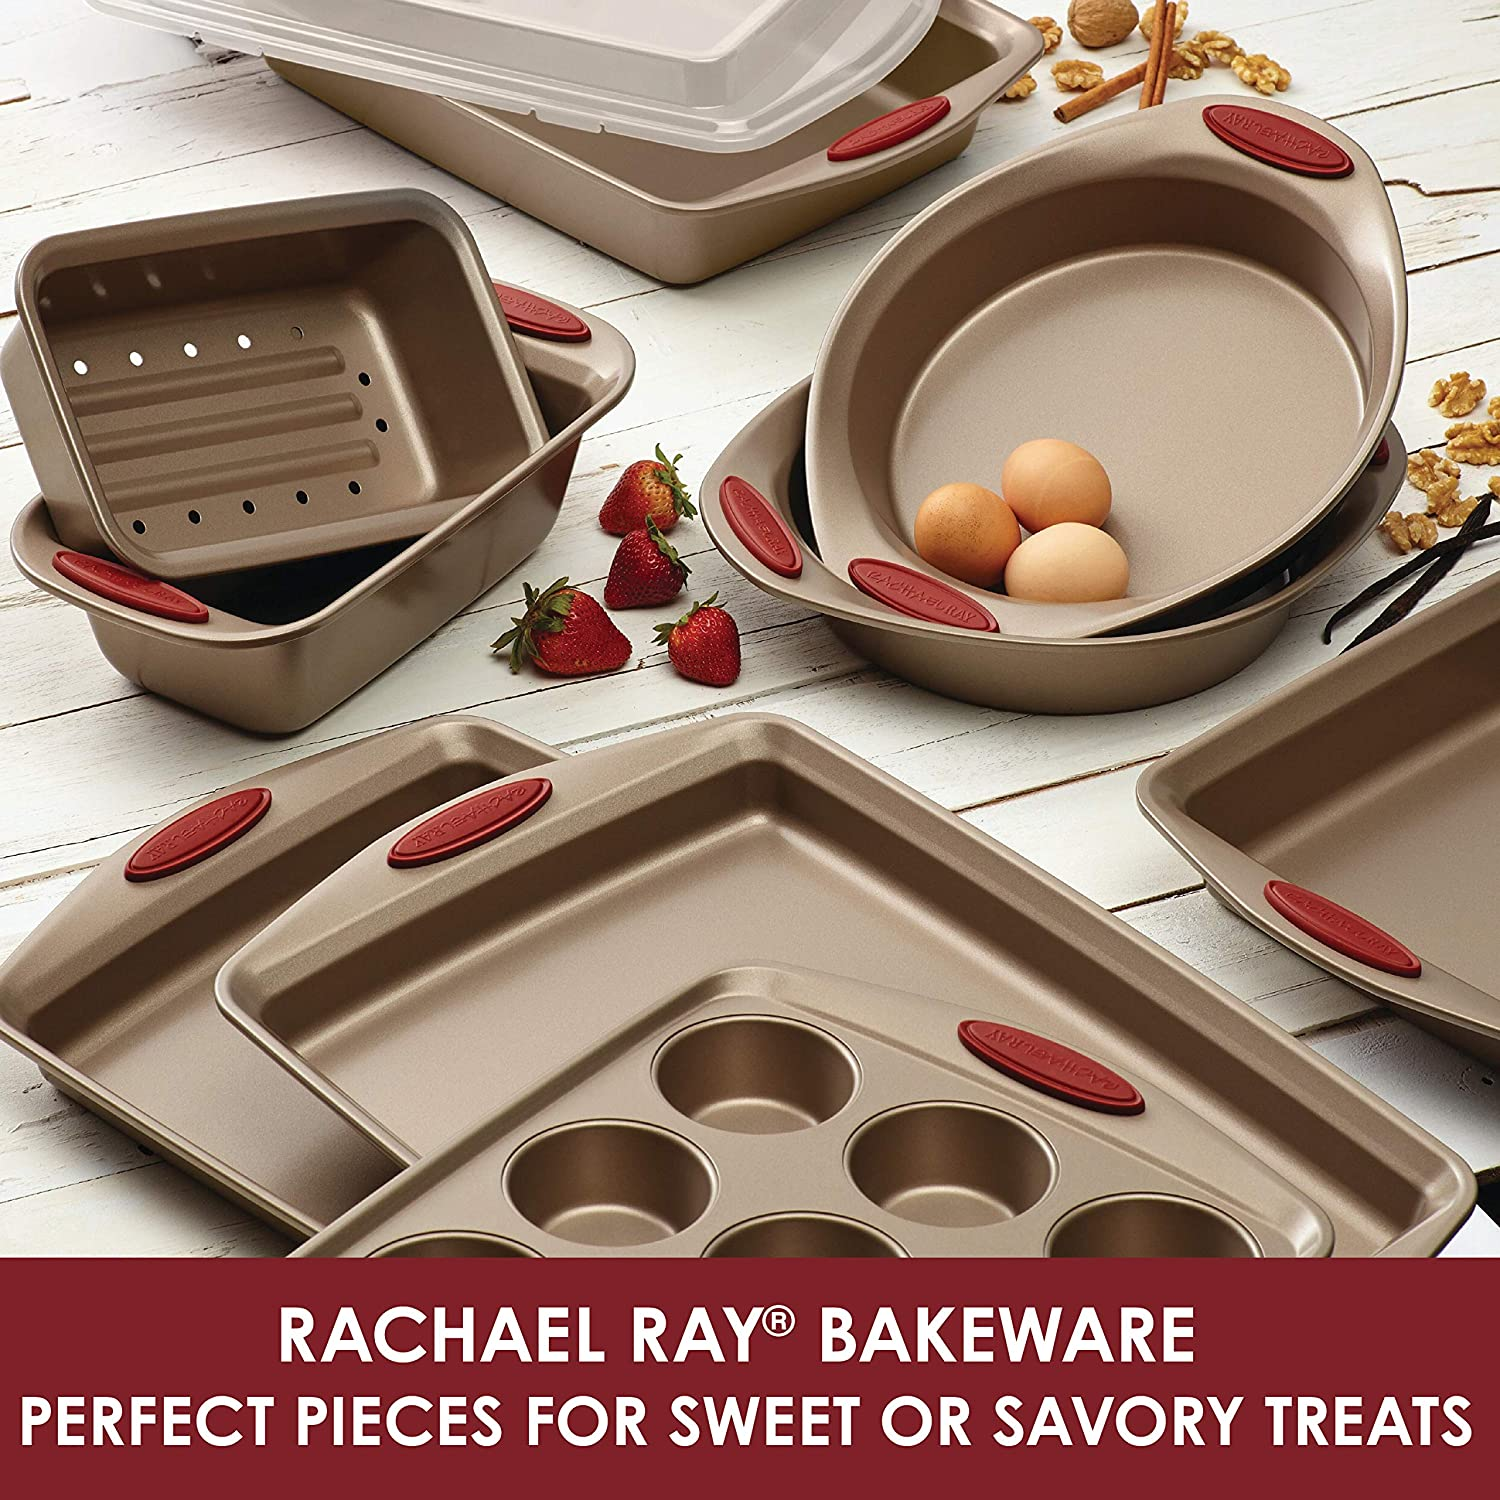 Cranberry Red Handle Grips Rachael Ray Cucina Nonstick Bakeware 24-Cup Bite-Size Baker Latte Brown